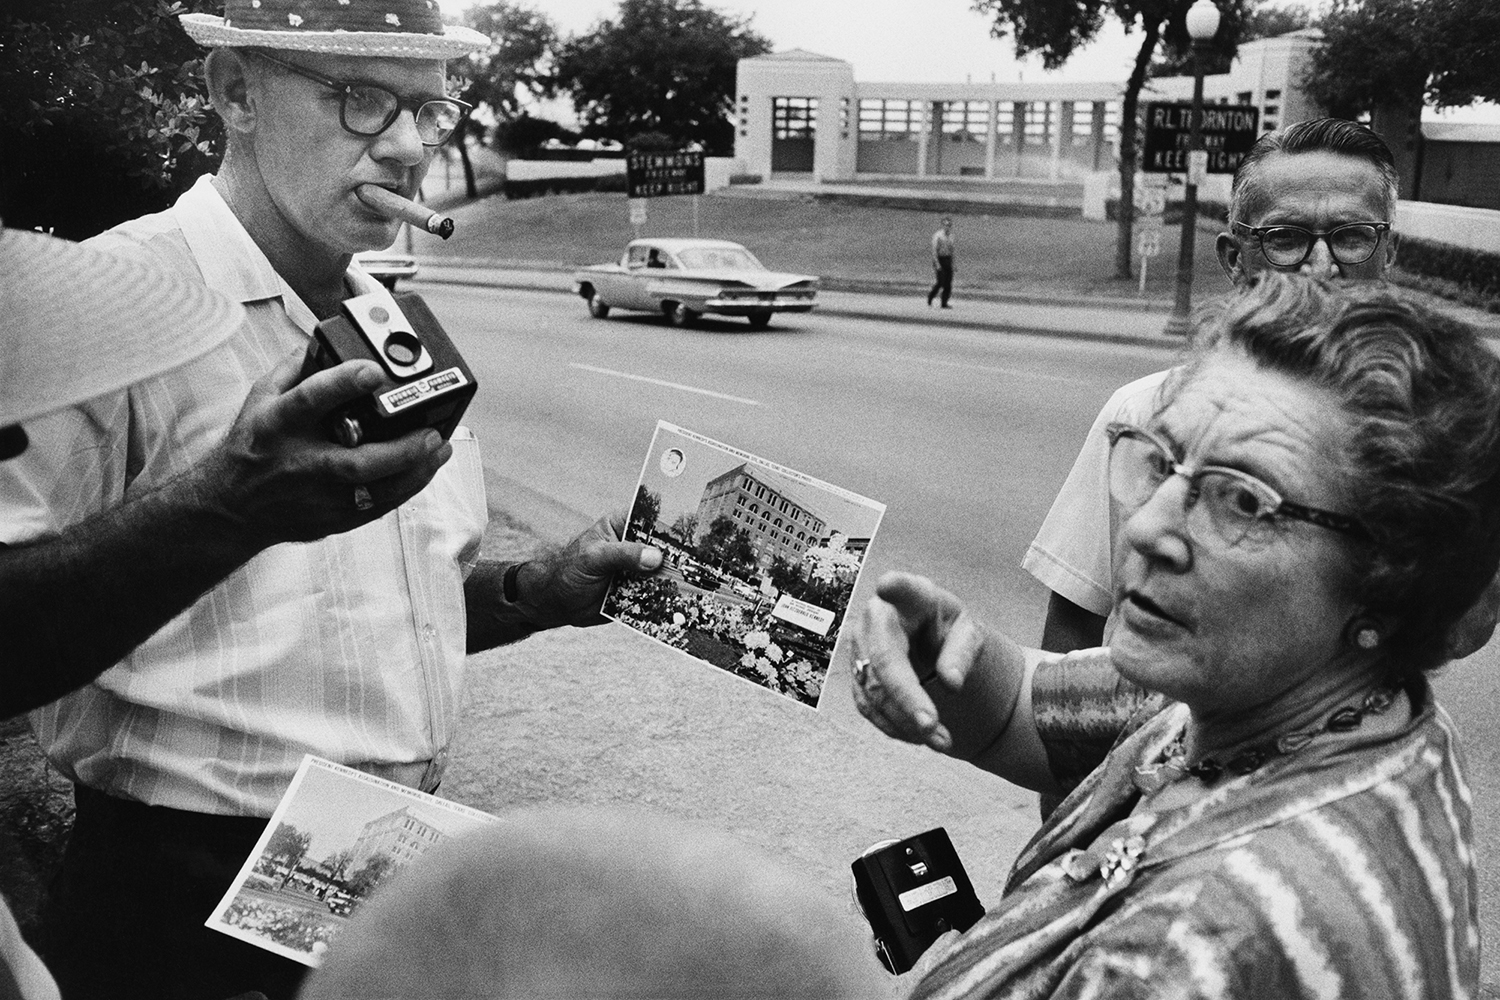 Dealey Plaza, Dallas, 1964                                                                                             © The Estate of Garry Winogrand, courtesy Fraenkel Gallery, San Francisco and Collection Center for Creative Photography, The University of Arizona